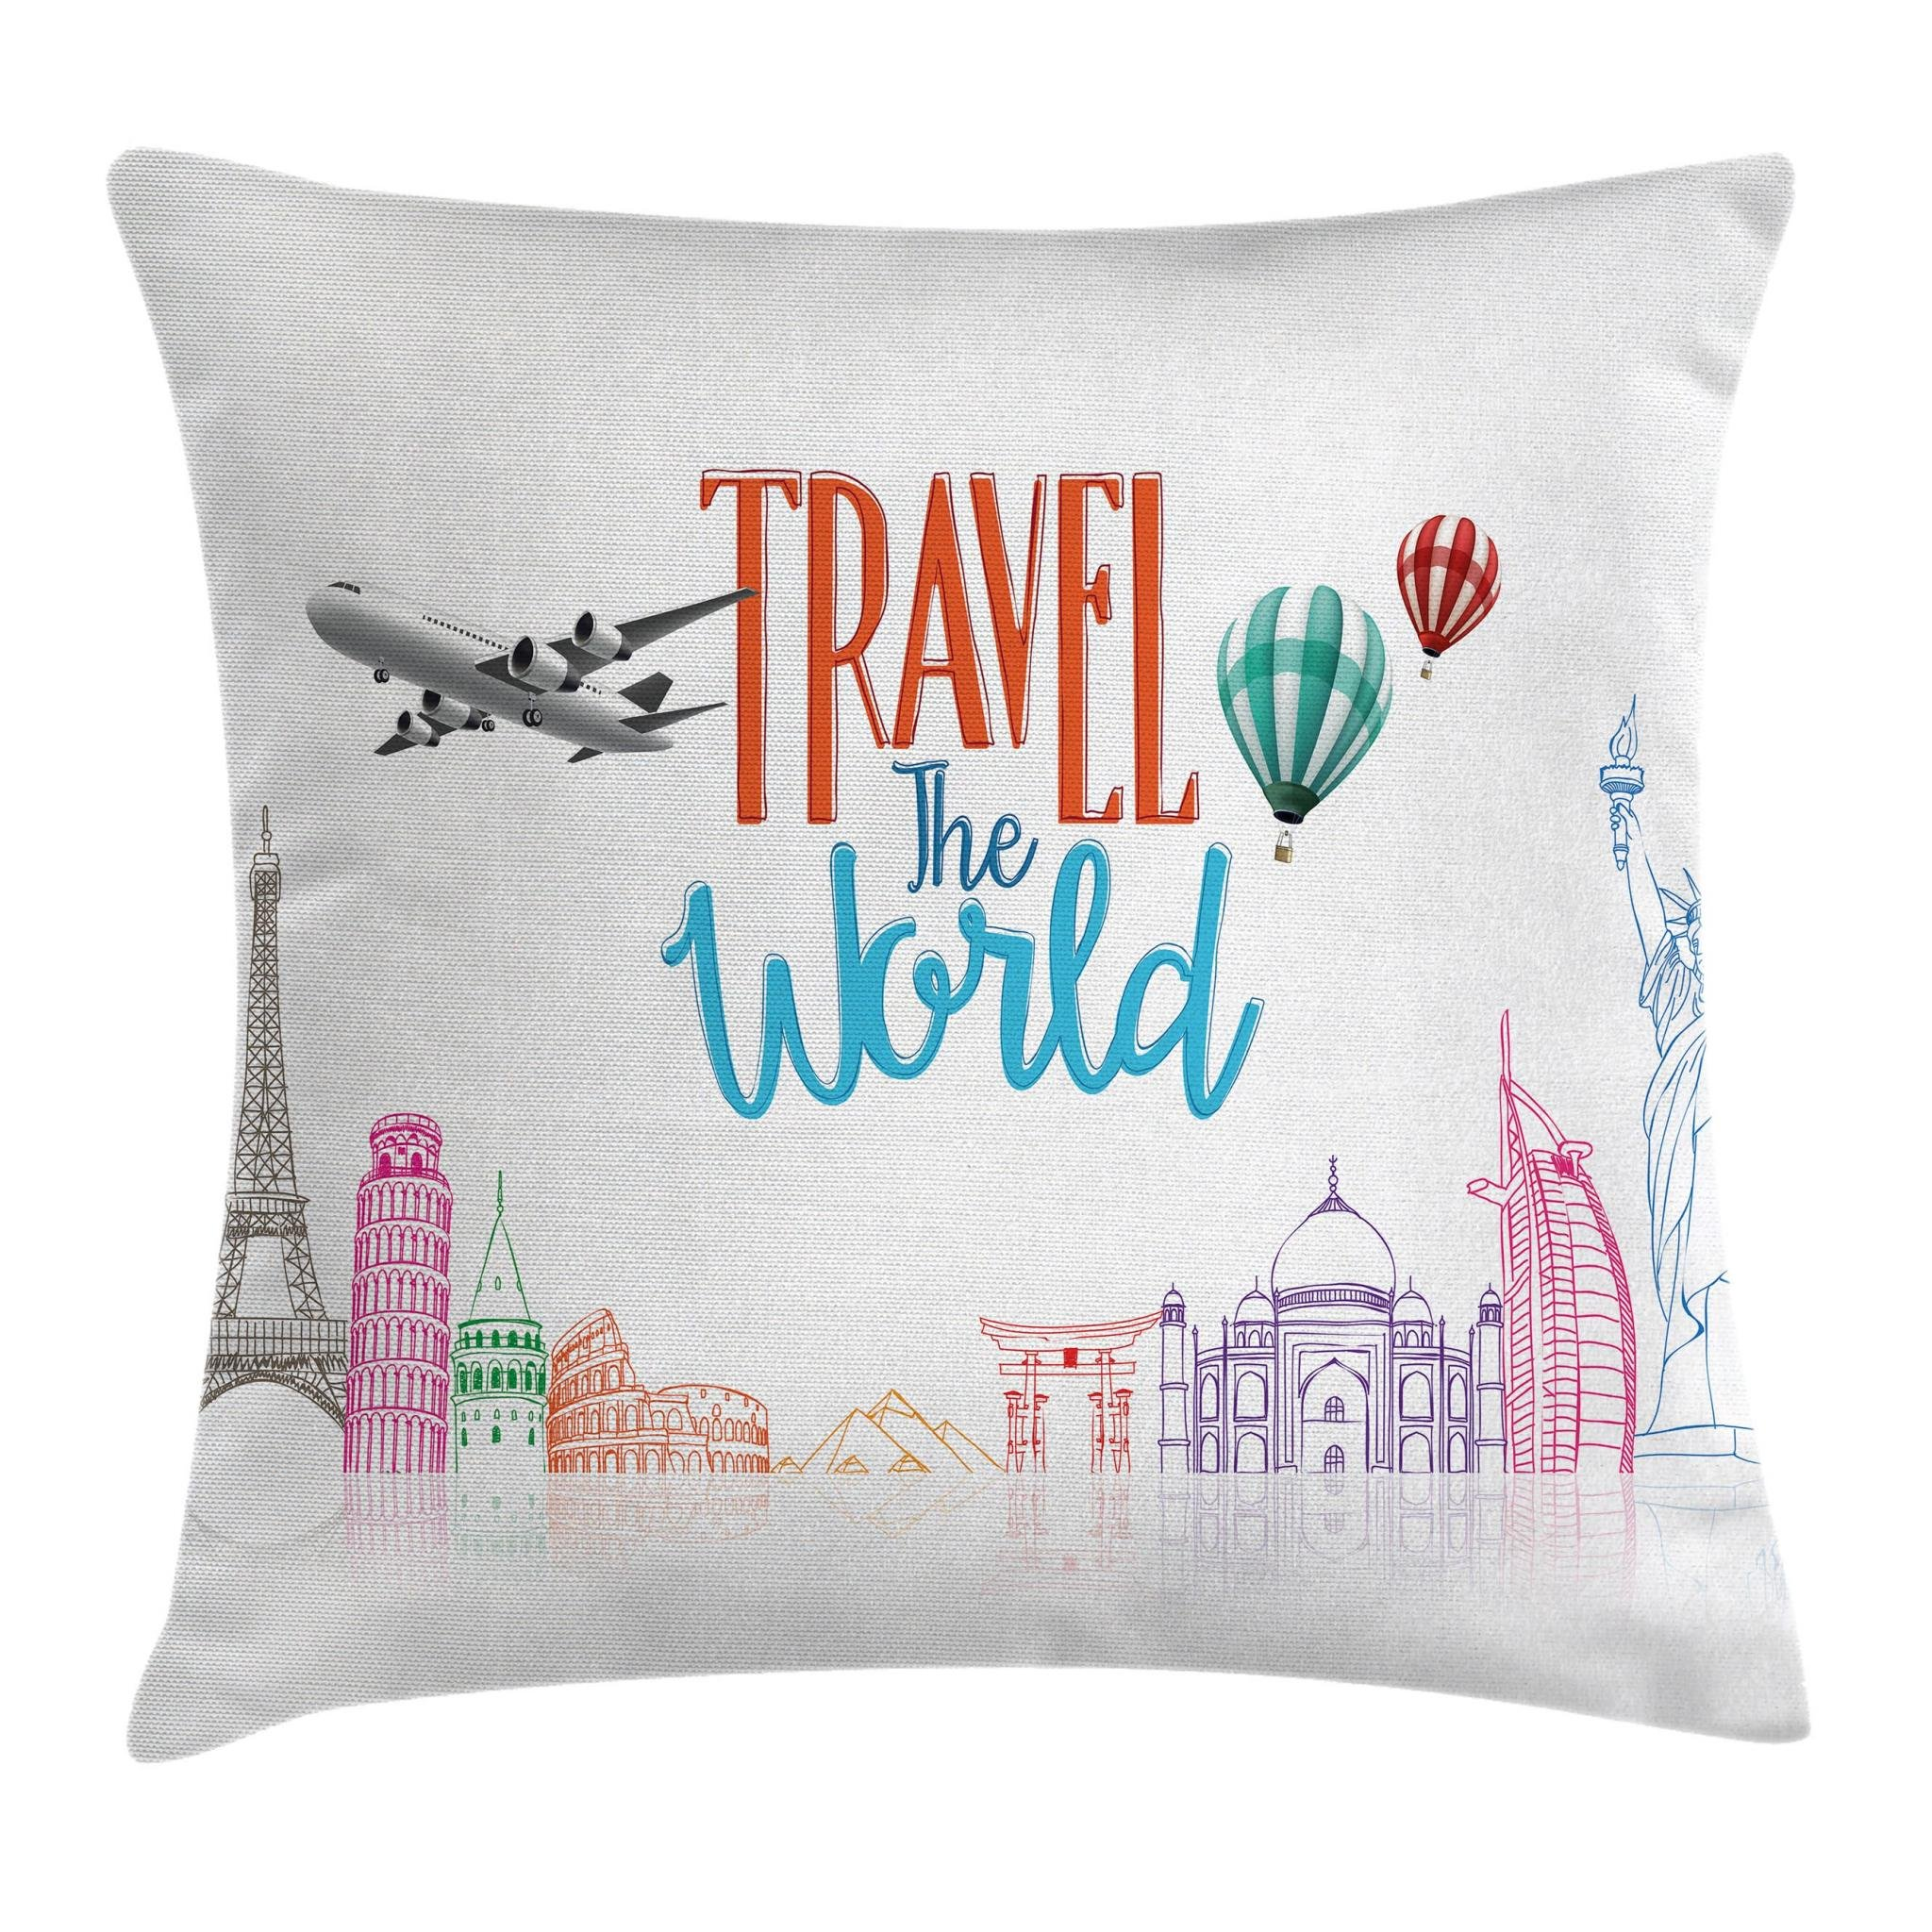 Ambesonne Quote Decor Throw Pillow Cushion Cover, Travel The World Lettering with Around World Landmarks Balloons Artwork Image, Decorative Square Accent Pillow Case, 18 X18 Inches, Multicolor